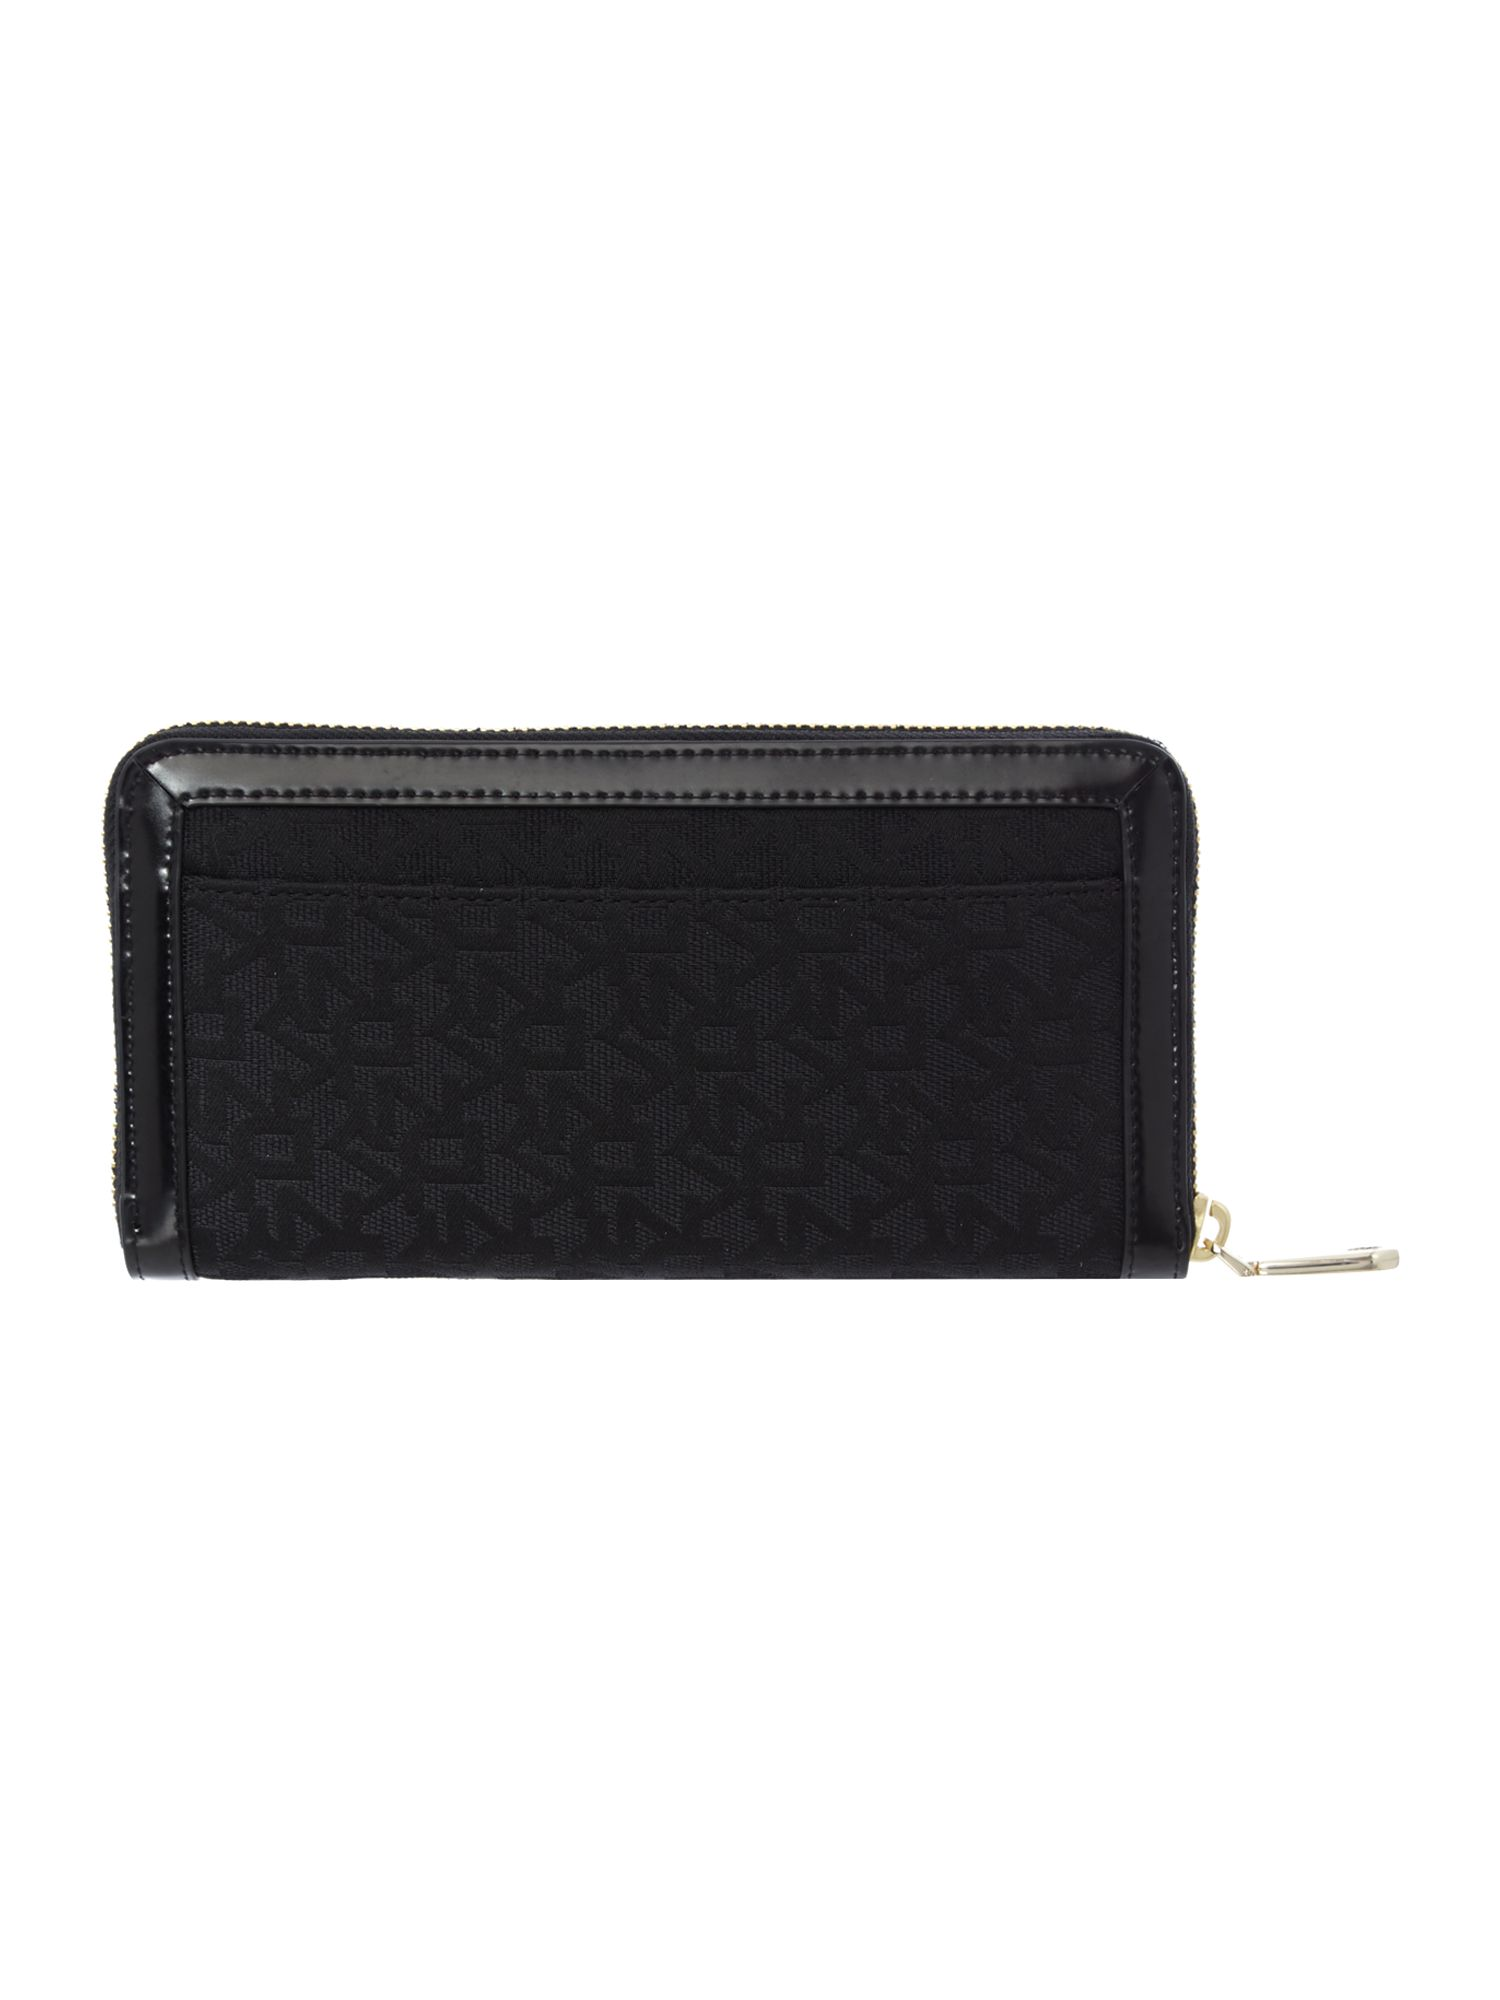 Heritage black large zip around purse